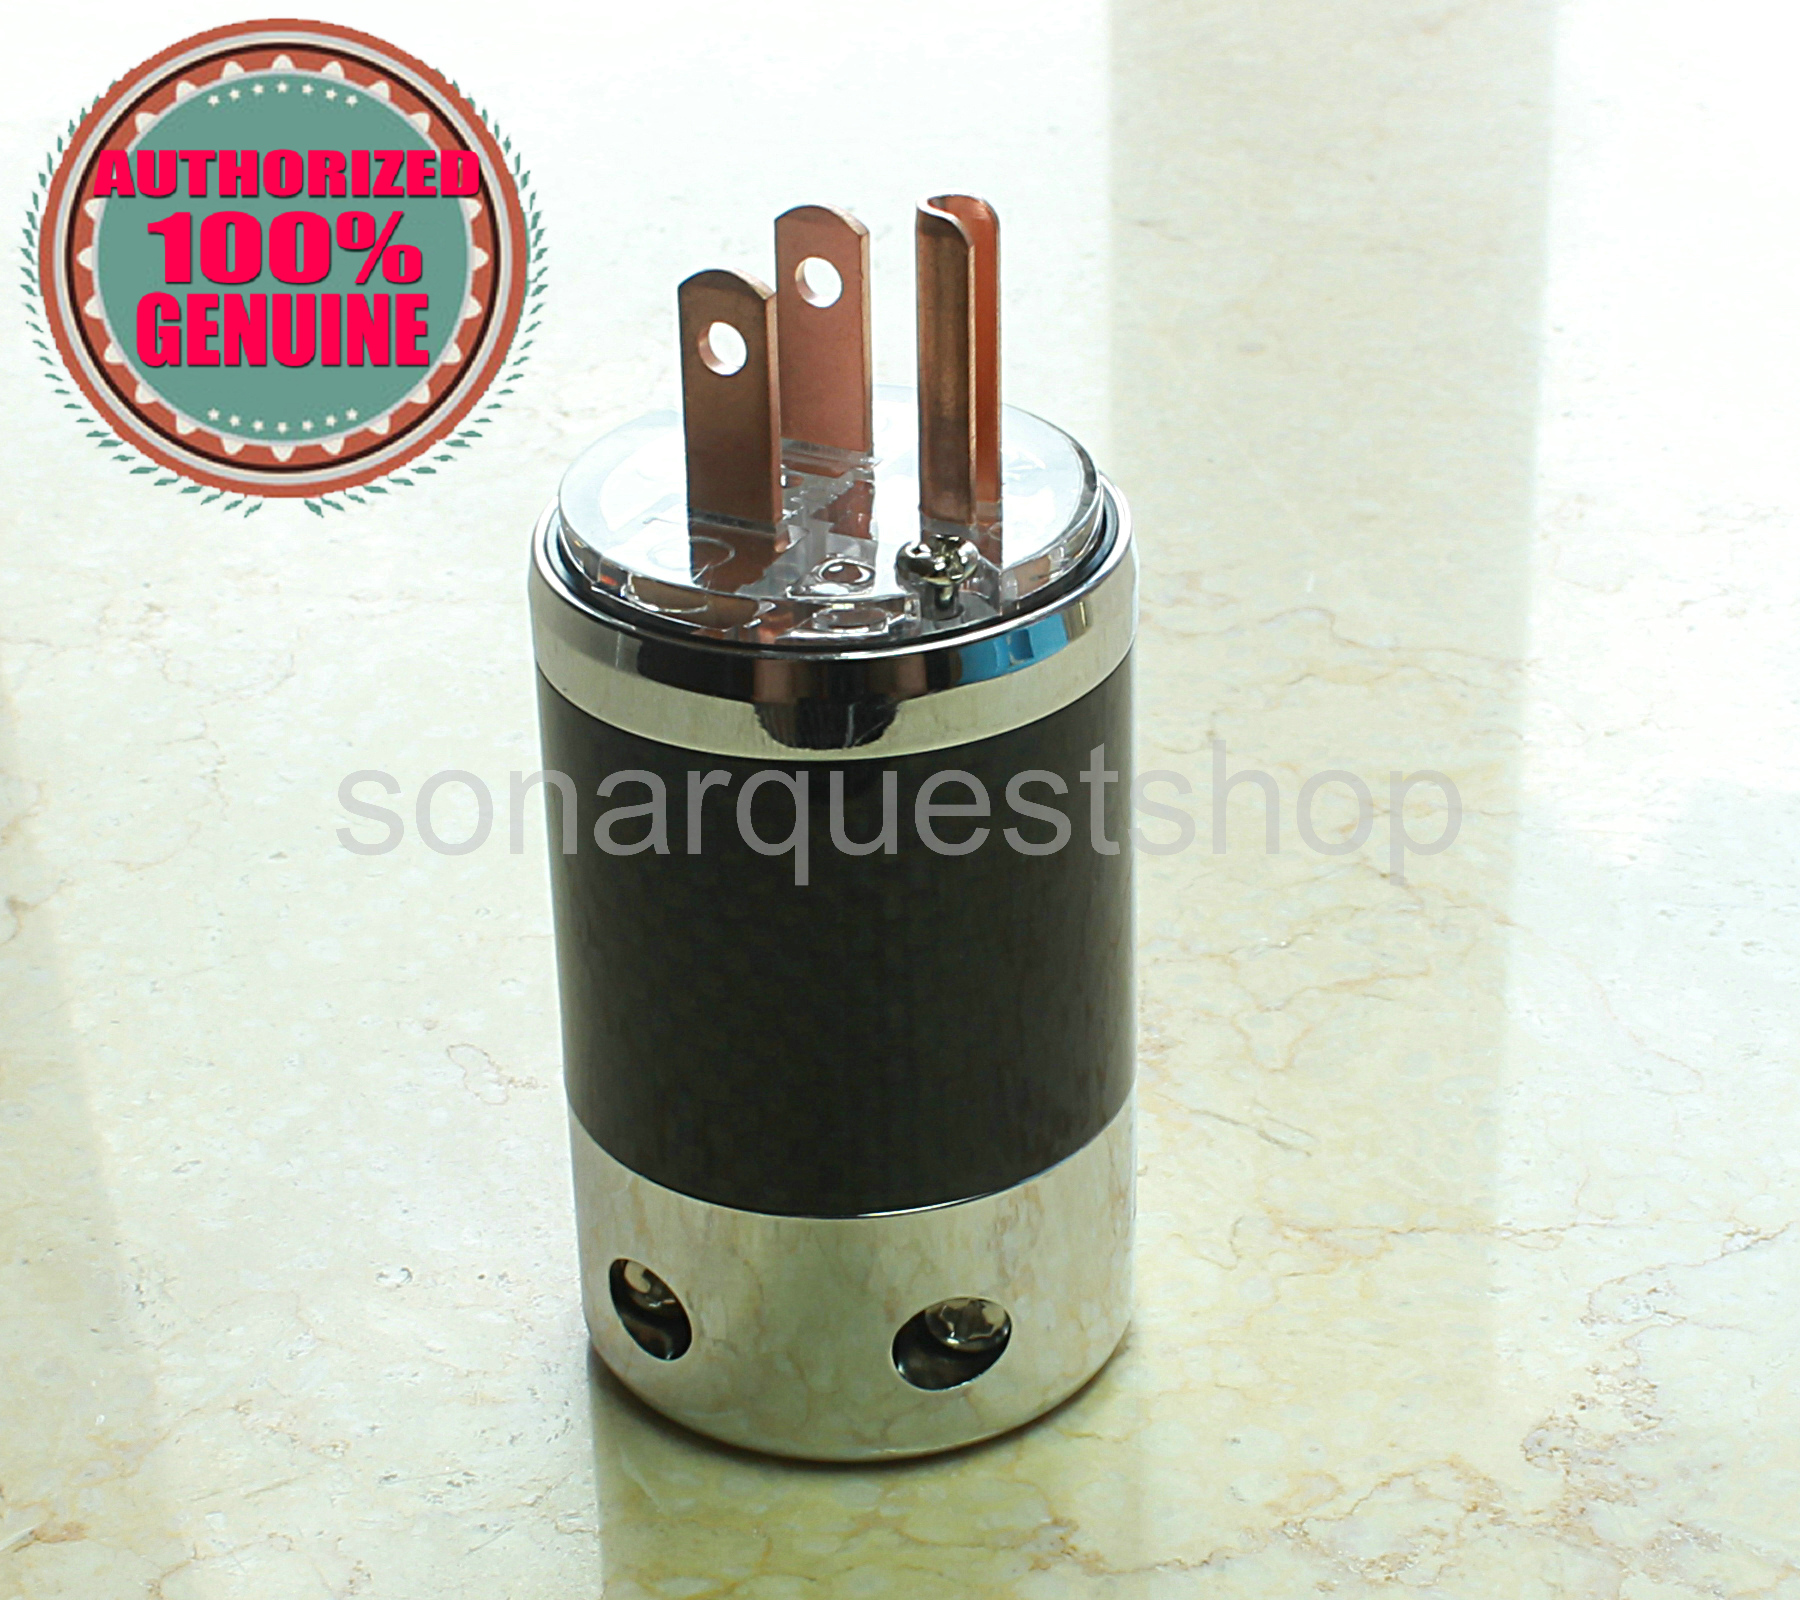 SONARQUEST SQ-P39(C)T US Red Copper UT Carbon fiber Power Plug